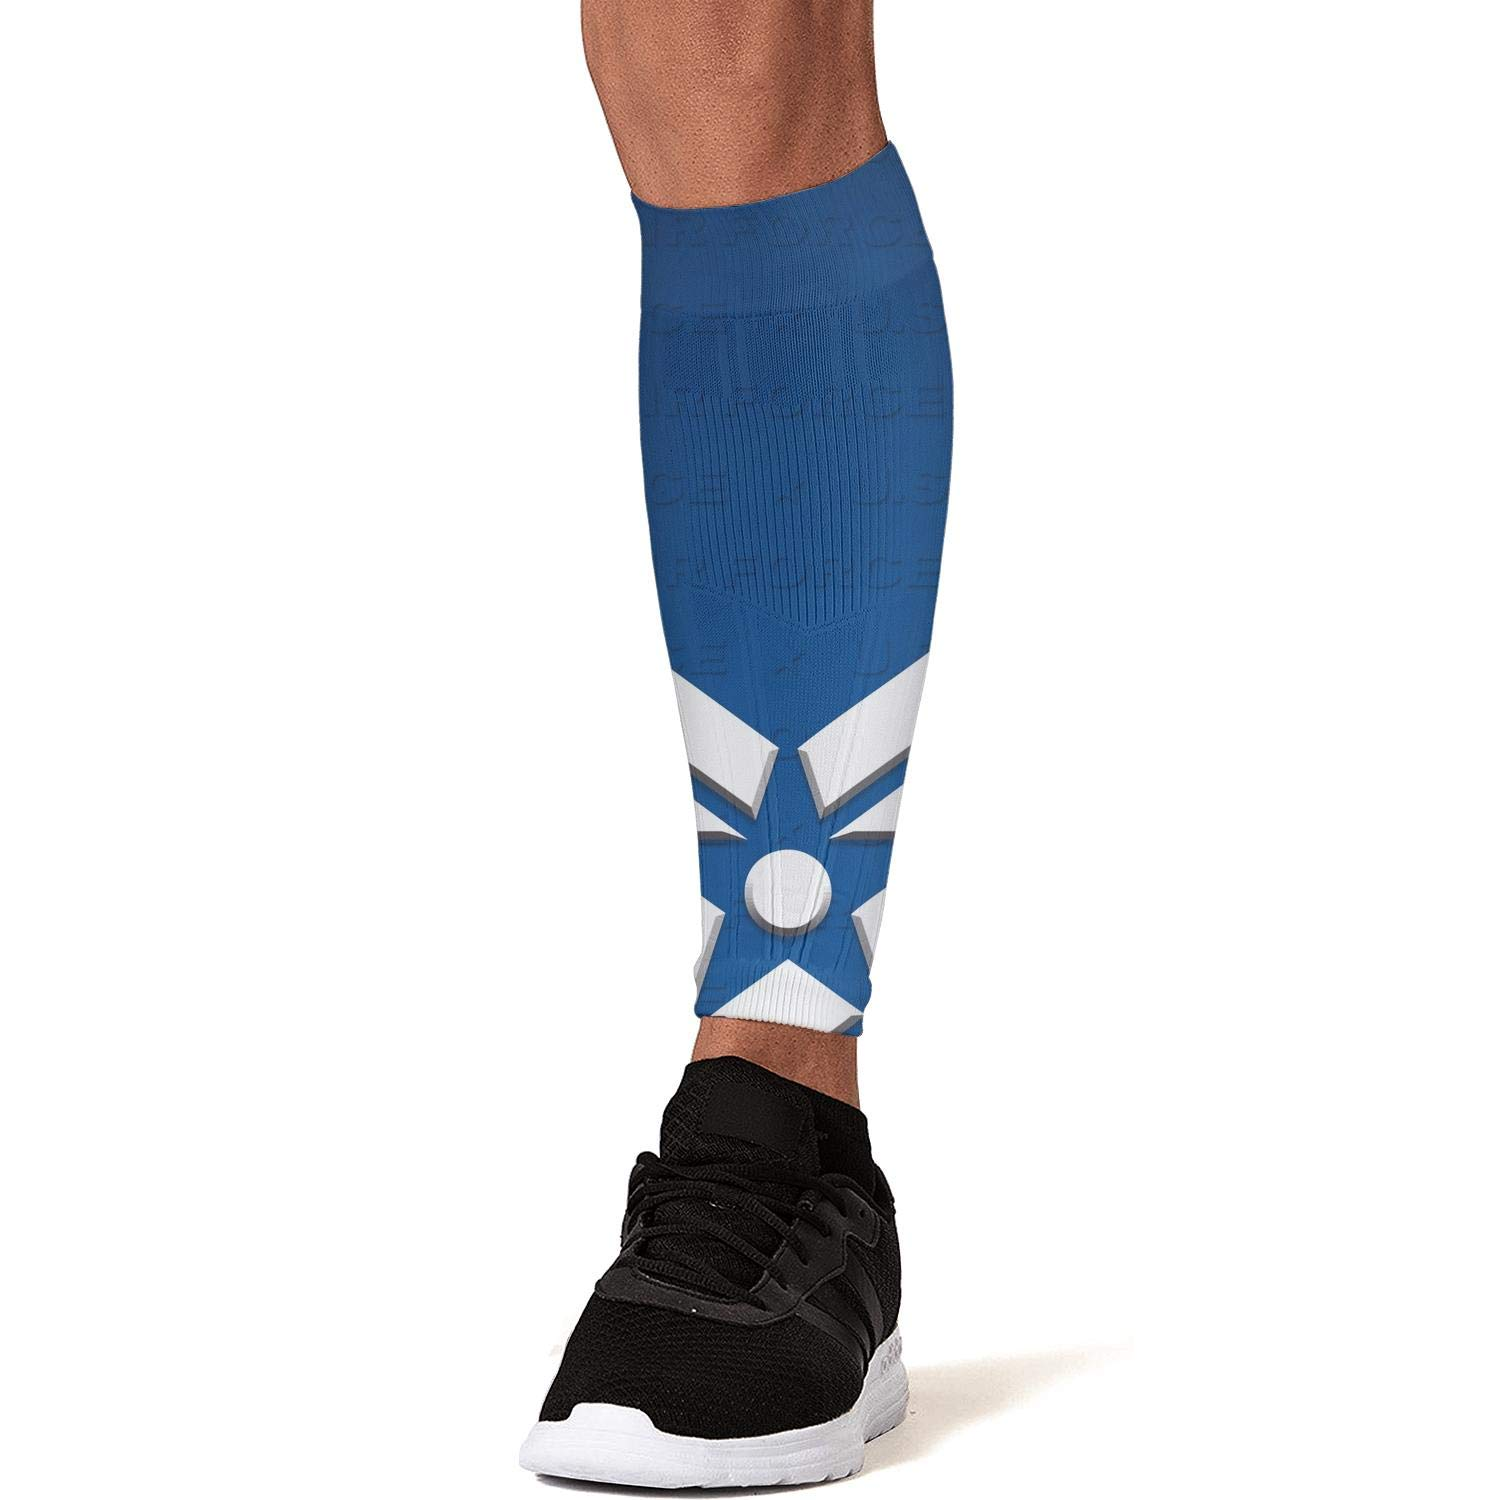 Smilelolly us air force Calf Compression Sleeves Helps Shin Splint Leg Sleeves for Men Women